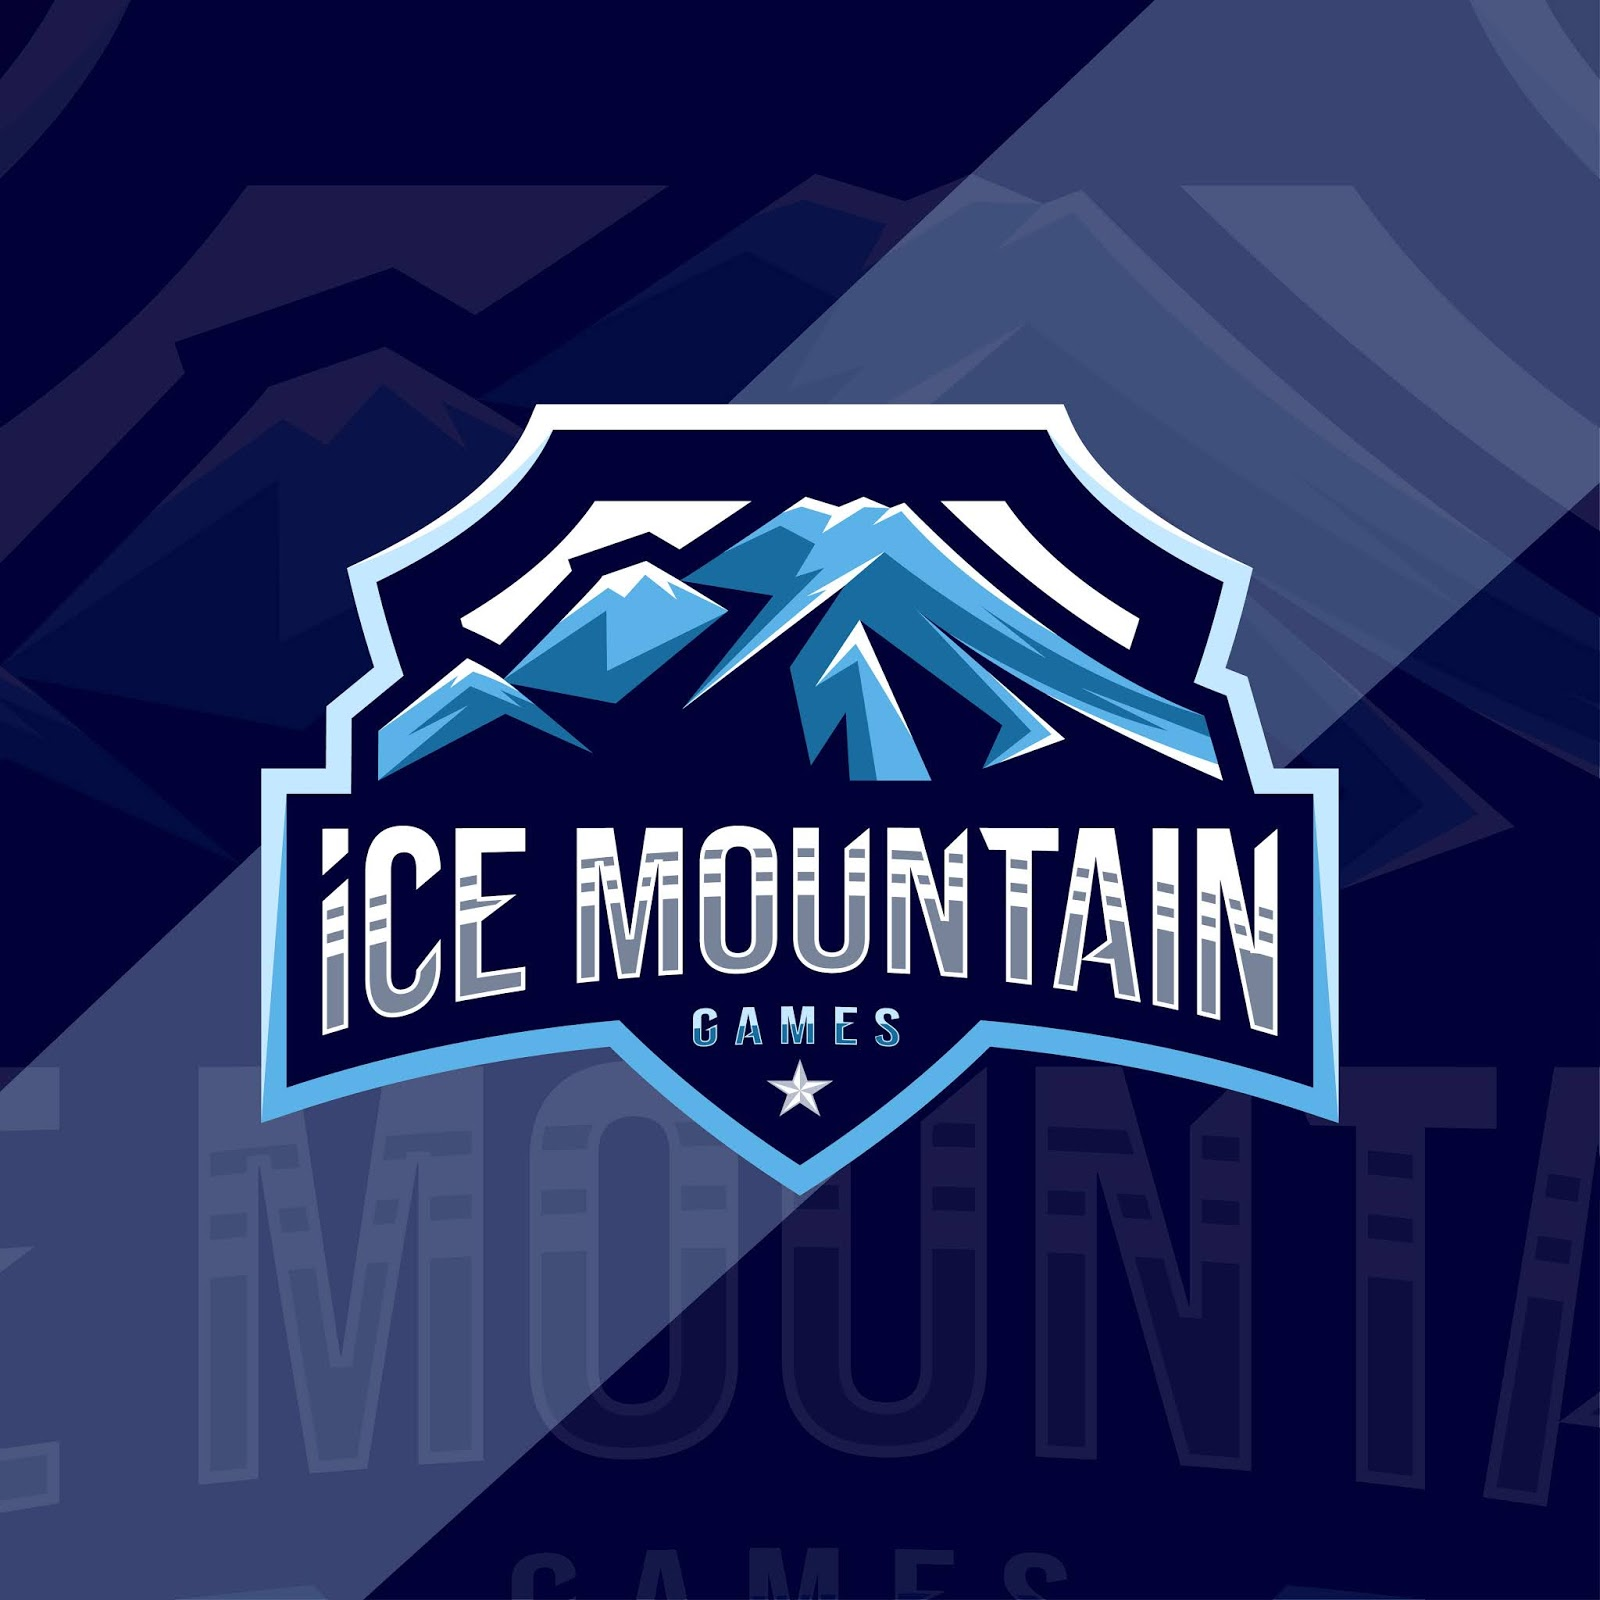 Ice Mountain Games Mascot Logo Sport Free Download Vector CDR, AI, EPS and PNG Formats